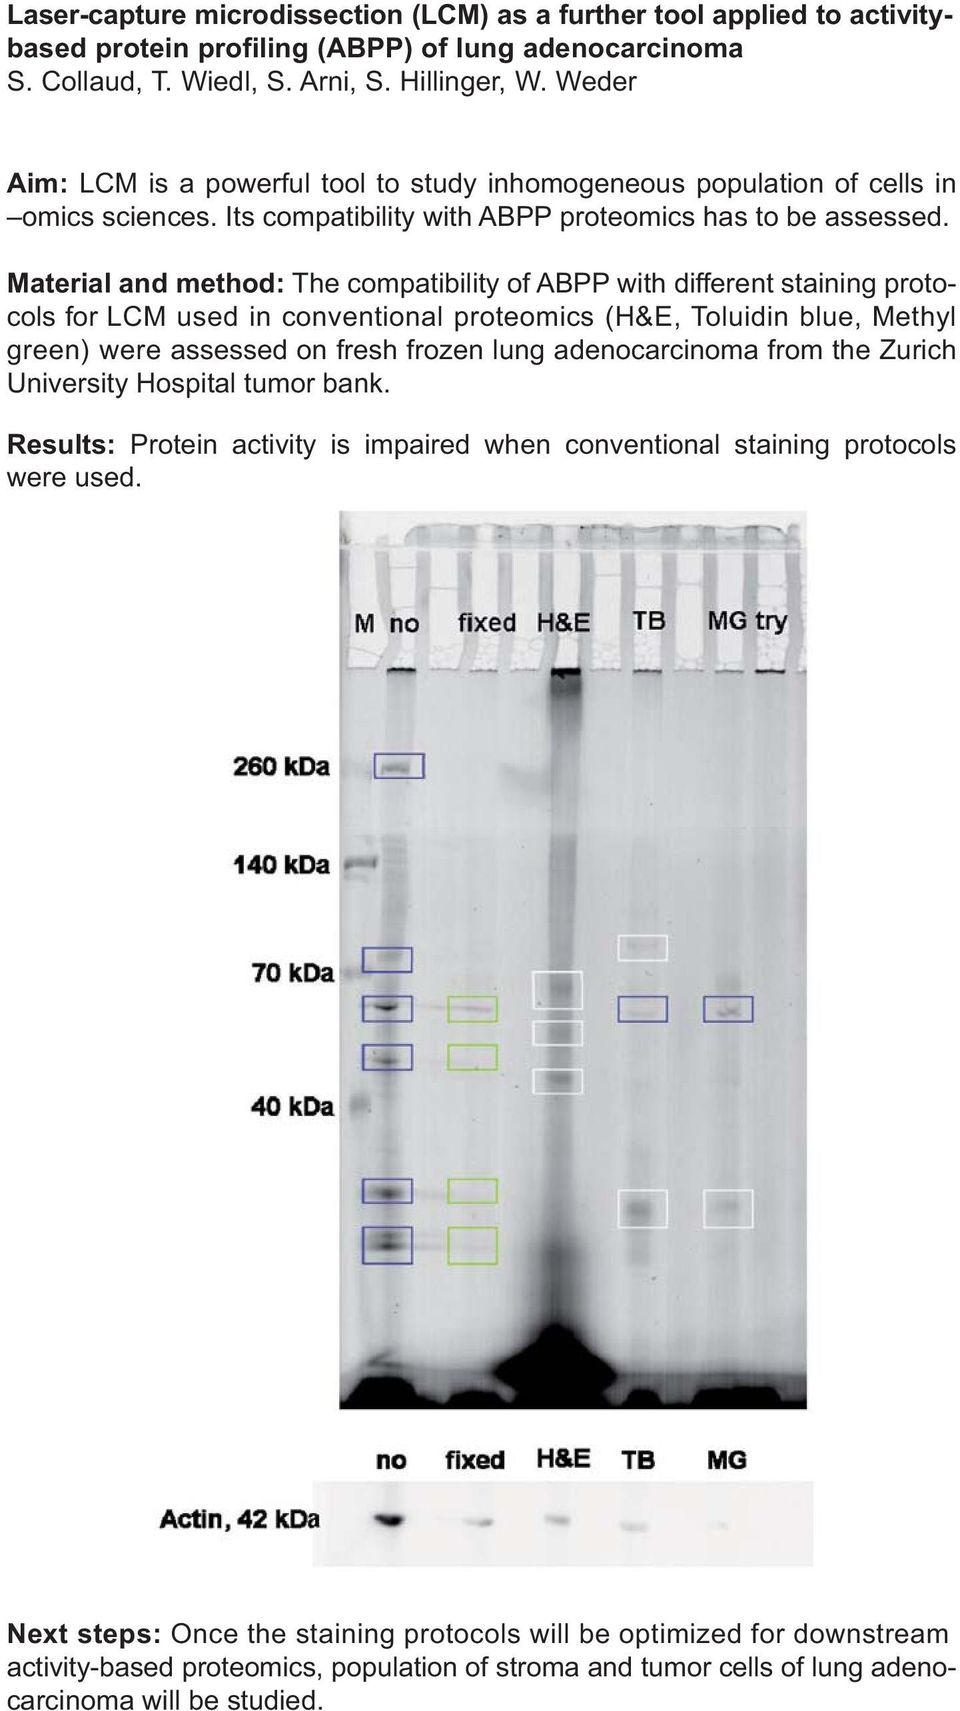 Material and method: The compatibility of ABPP with different staining protocols for LCM used in conventional proteomics (H&E, Toluidin blue, Methyl green) were assessed on fresh frozen lung